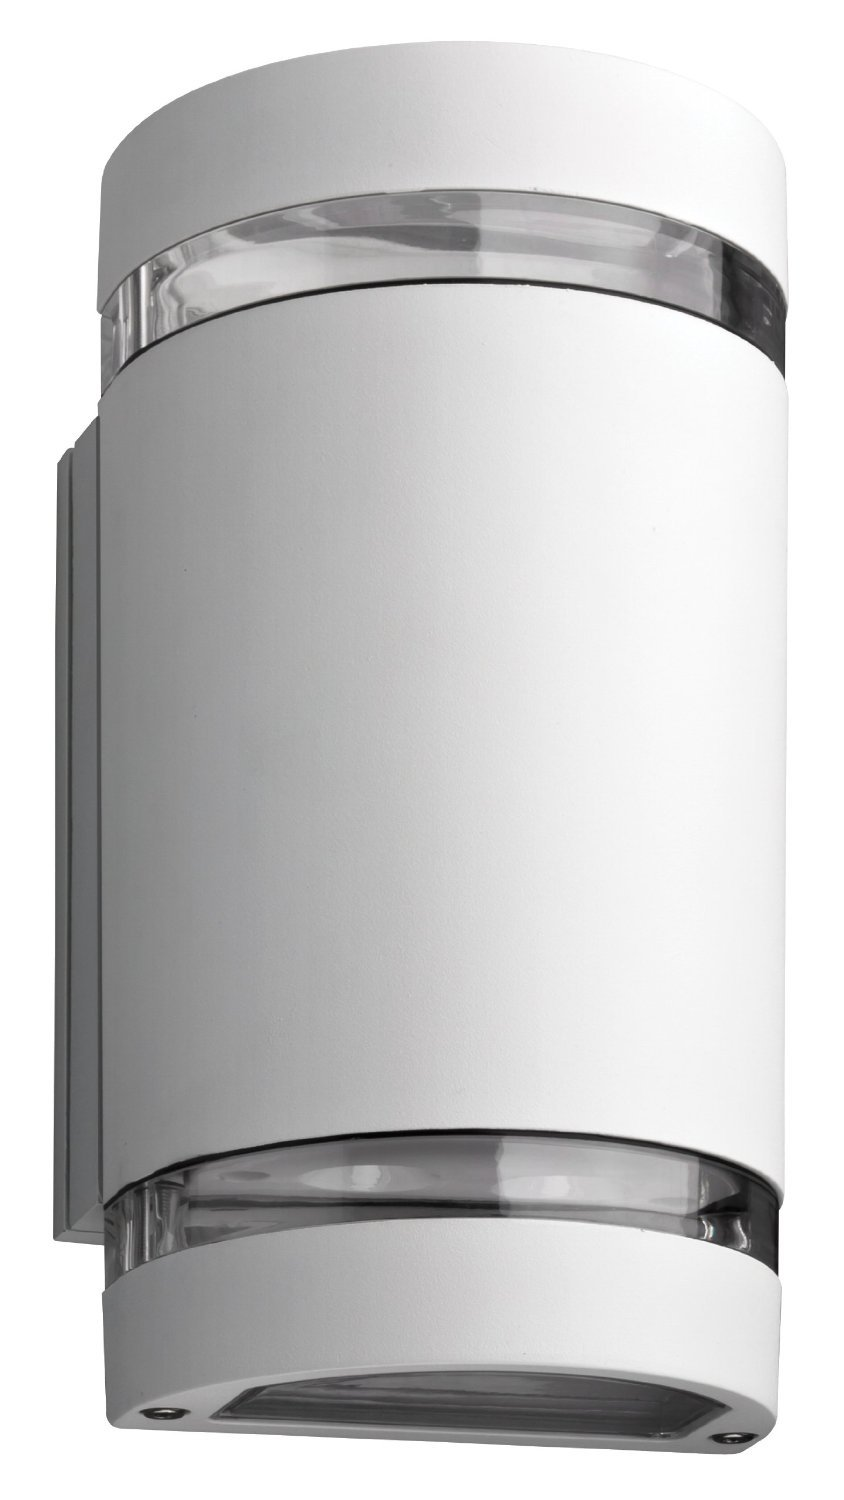 Lithonia Lighting OLLWU WH M6 Outdoor Up and Down LED Wall Cylinder, 4000K, 14 Watt, Black - Cast-aluminum housing with corrosion-resistant paint in white Polycarbonate lens protects the LED from moisture and dirt 4000K CCT LEDs - patio, outdoor-lights, outdoor-decor - 61l3whyOooL -